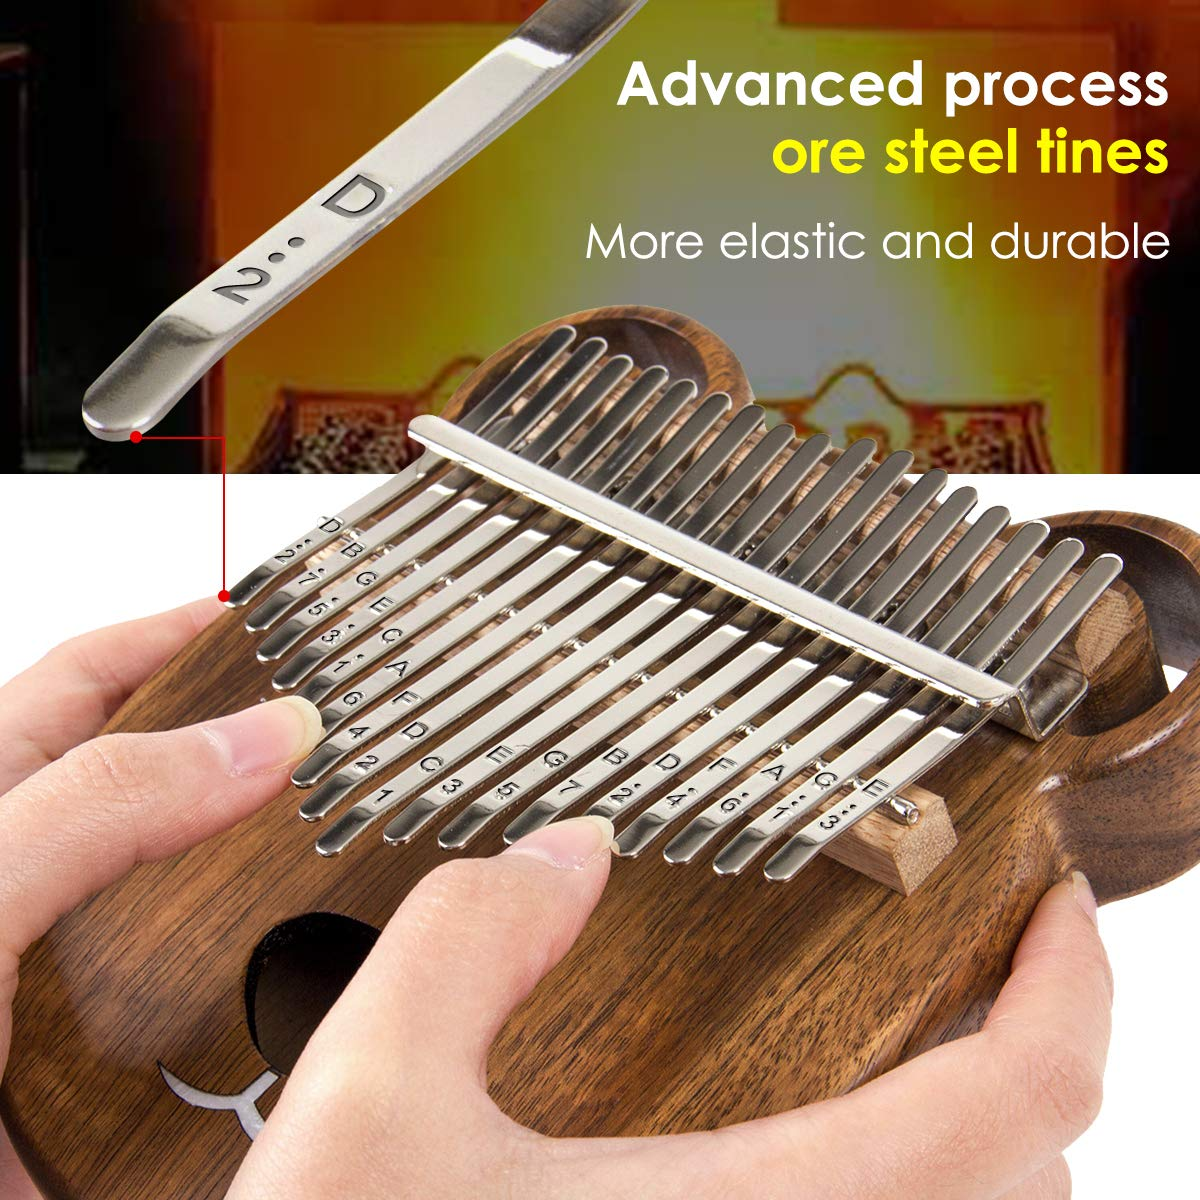 Kalimba 17 Keys Thumb Piano Solid Wood Finger Piano Start Kits African Instrument with Protective Case Tuning Hammer Study Booklet Cleaning Cloth From AKLOT by AKLOT (Image #4)